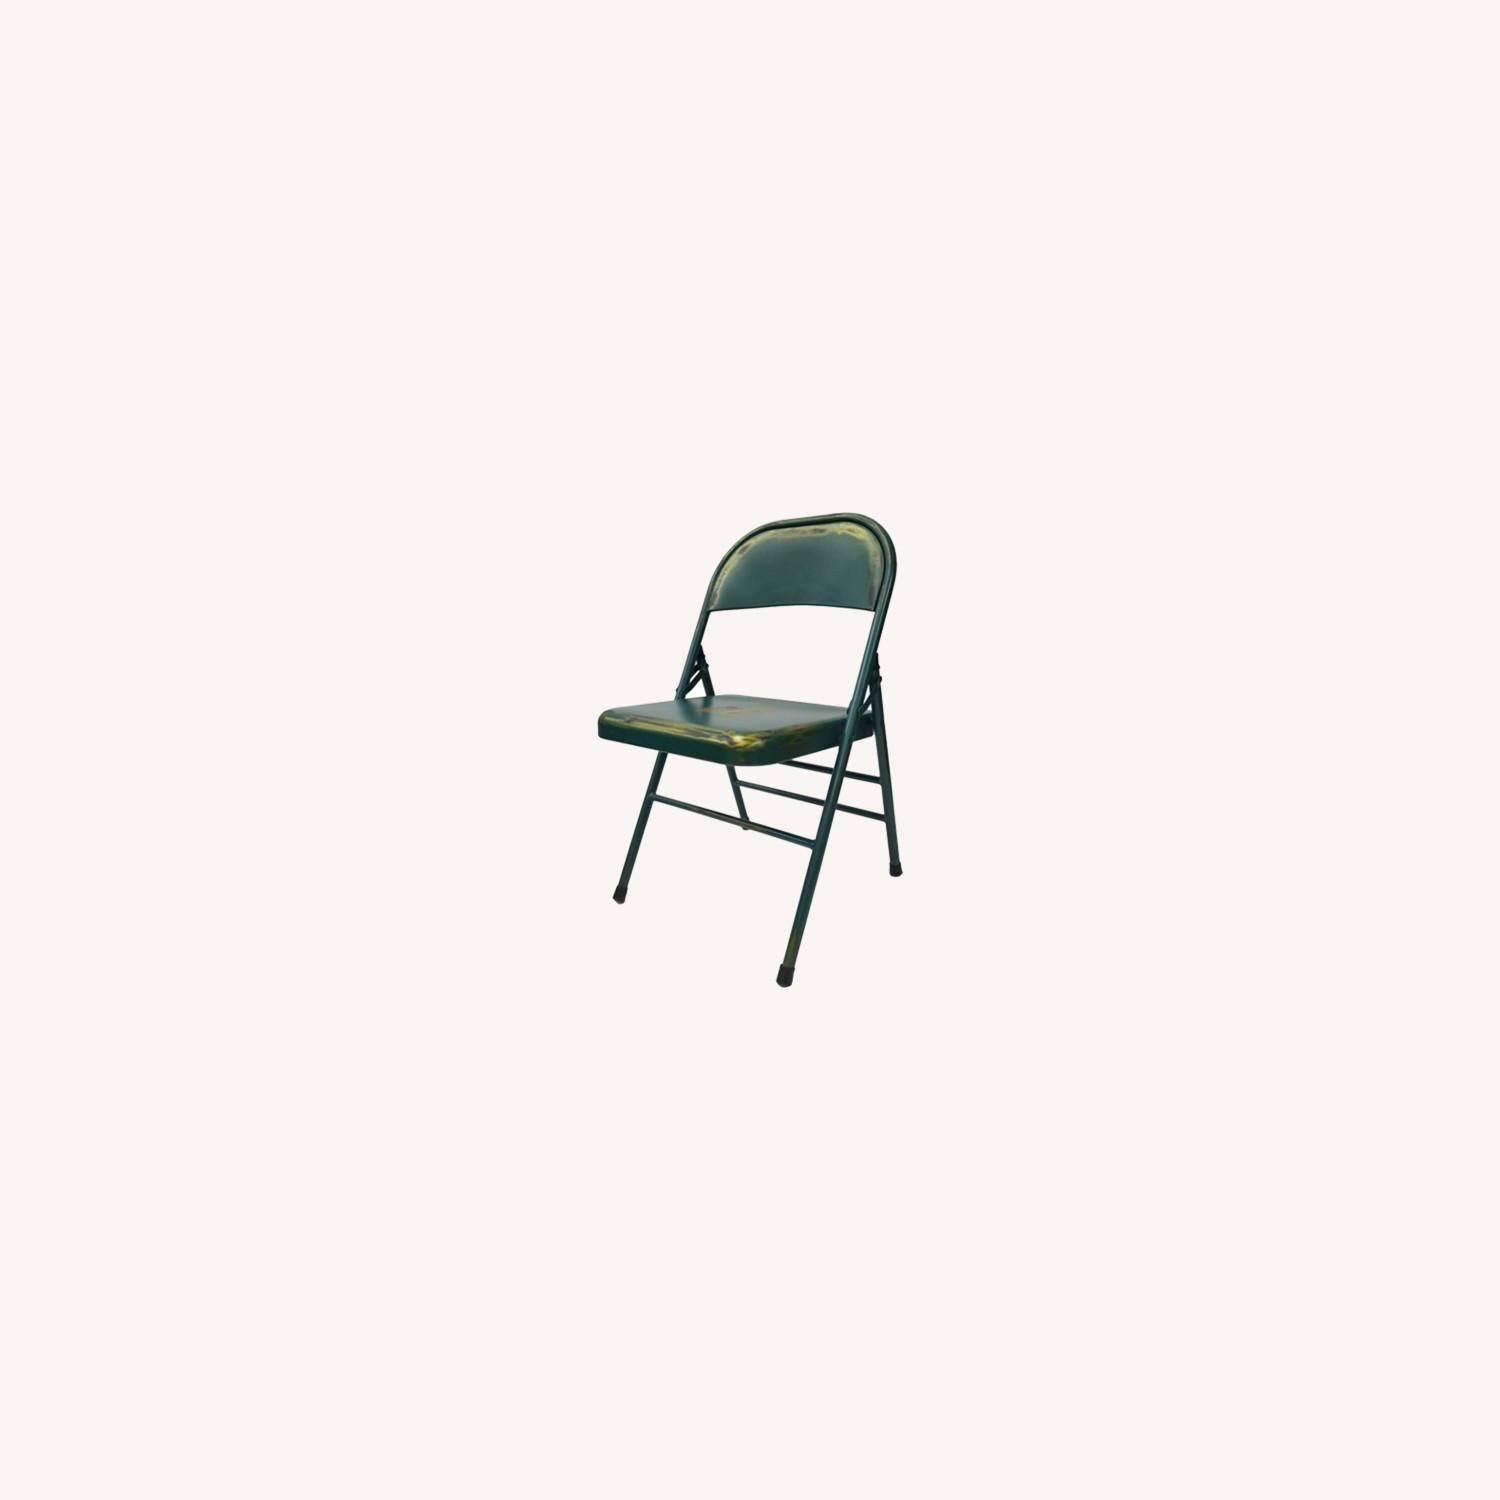 Folding Chair In Turquoise Powder Coated Finish - image-6